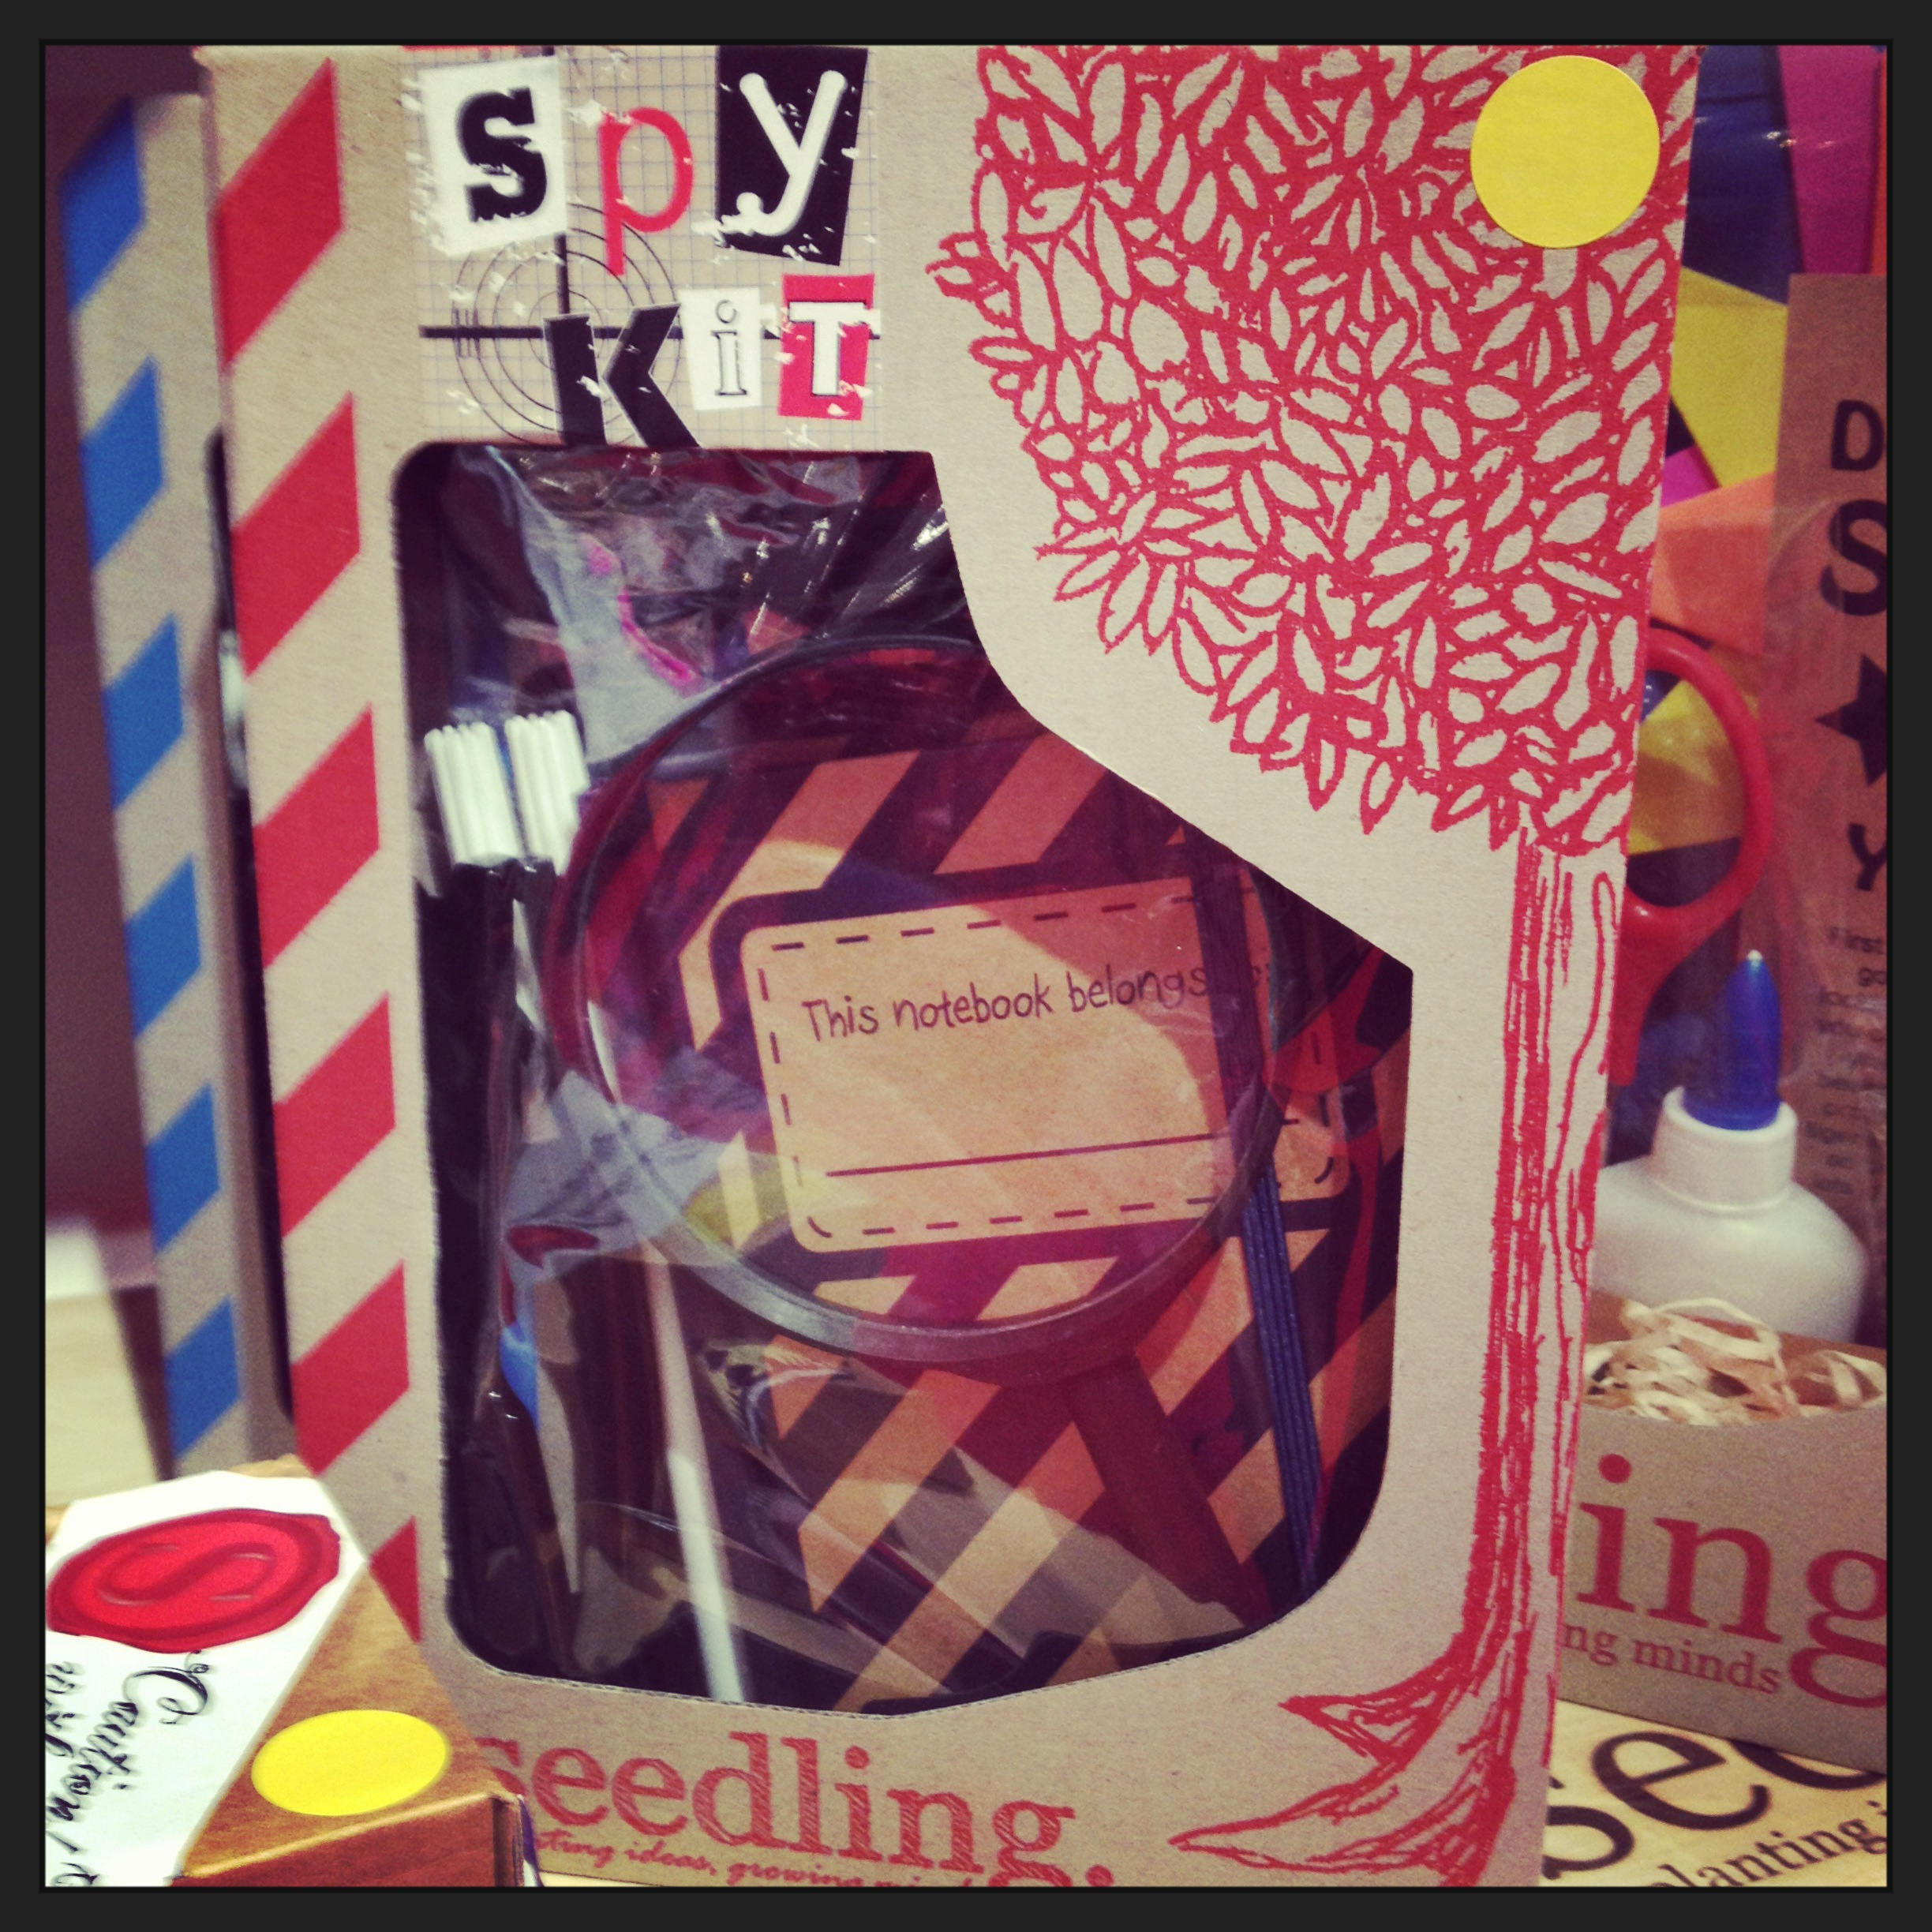 Seedling's cool Spy Kit will make a great gift!